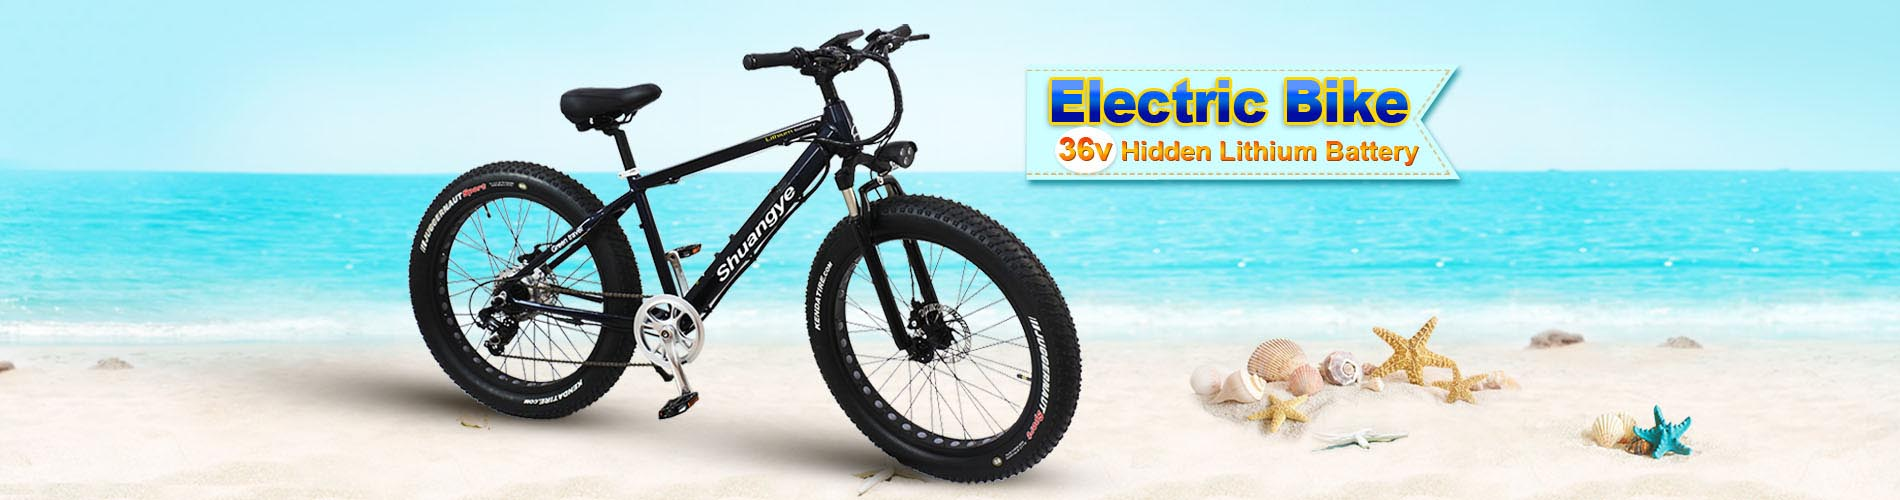 shuangye electric bike warranty